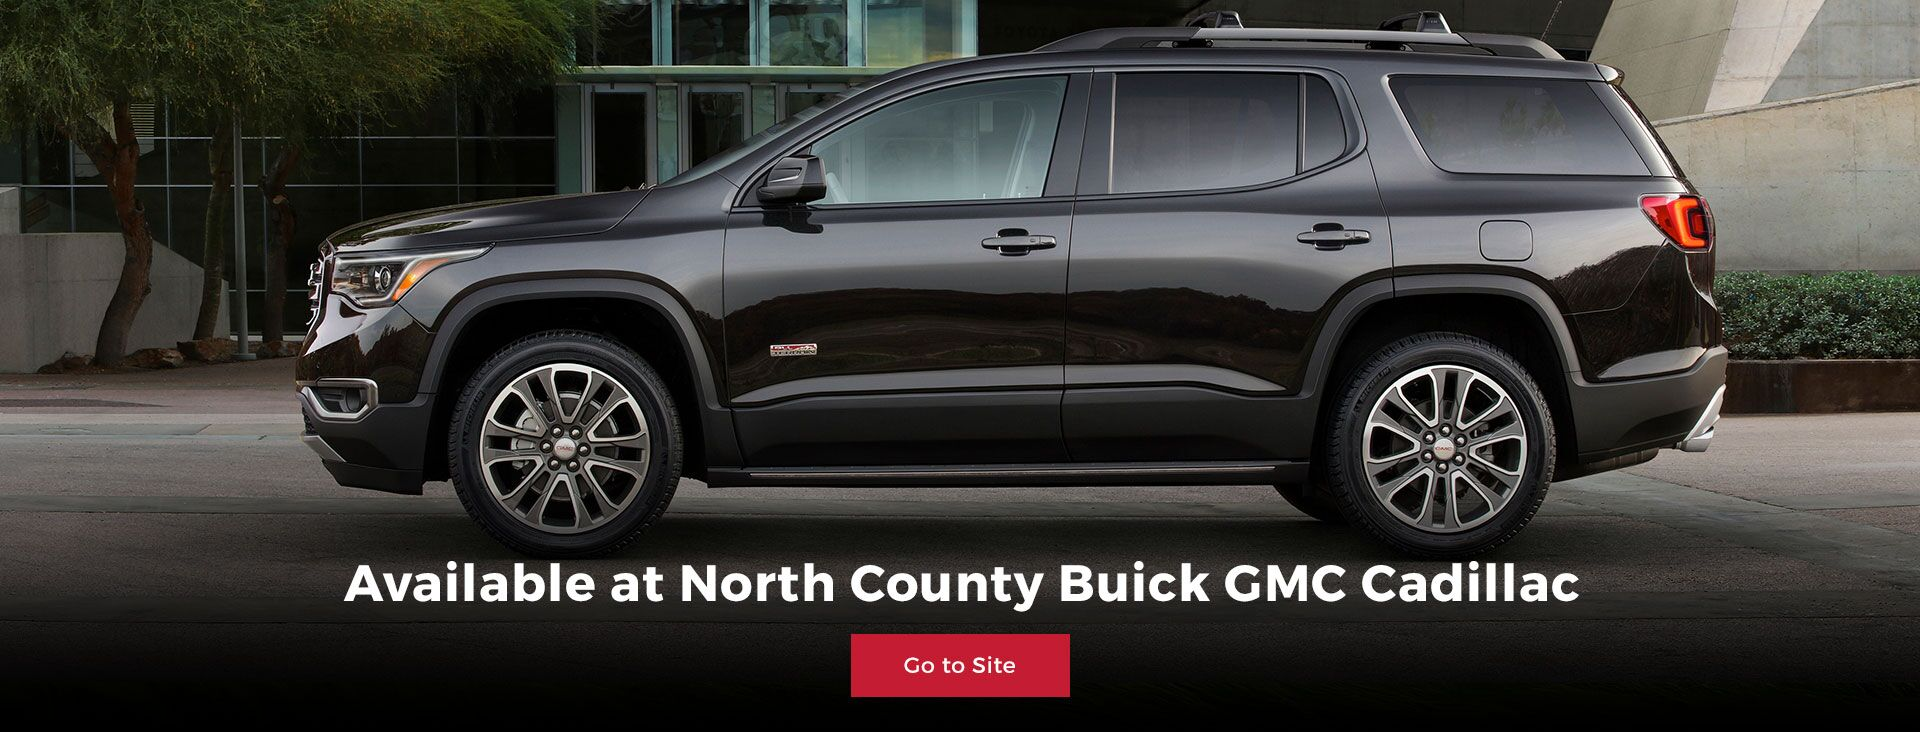 NORTH COUNTY BUICK GMC CADILLAC in Escondido CA